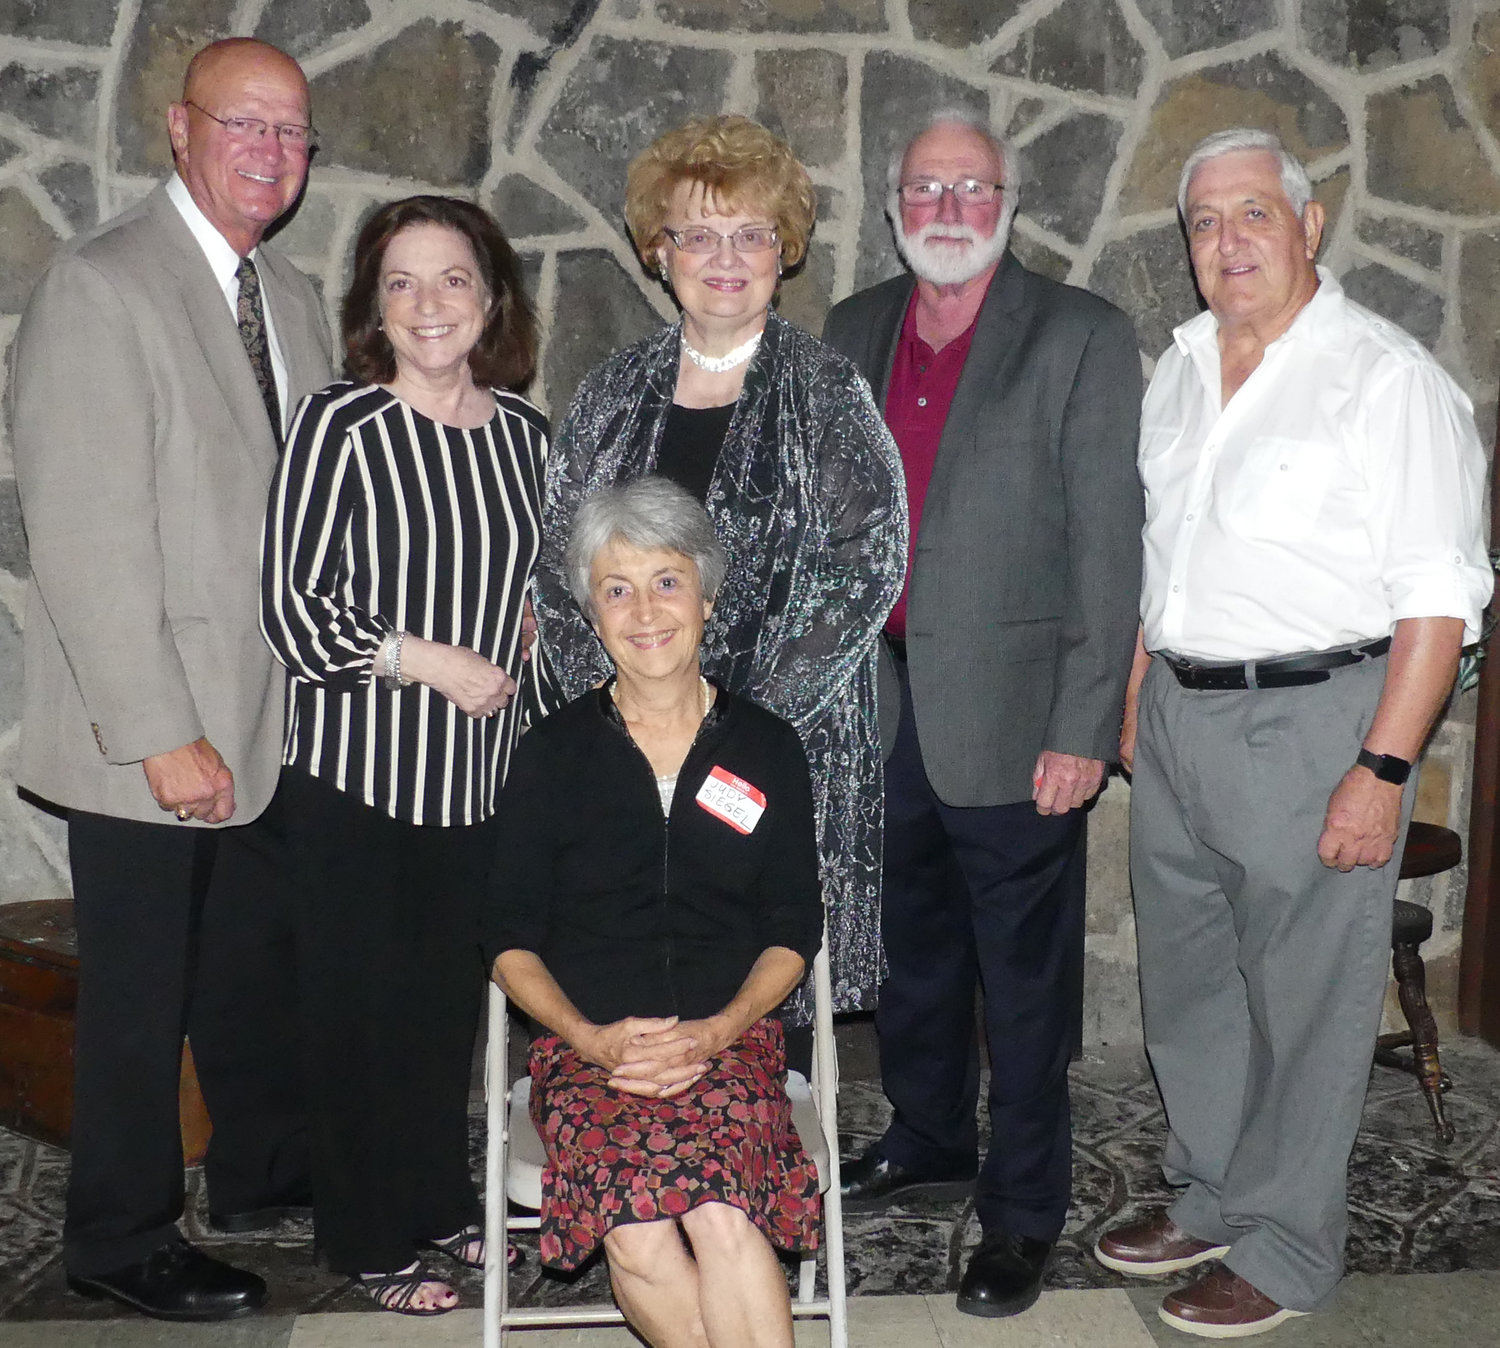 LASTING MEMORIES — Members of the Rome Free Academy Class of 1964 gathered for their 55-year reunion on Saturday at the Teugega Country Club.  Among those helping to bring classmates back together to celebrate old times as well as make new memories were members of the reunion committee, including, from left: Ron D'Amore, Fran D'Amore, Eileen DeRuby Urtz, Ron Barry, Ron Townsend. Judy Siegel, seated, came the farthest — from Florence, Italy, to join her classmates for the celebration.  The weekend reunion included an informal gathering on Friday at the Delta Lake Inn and Saturday's dinner party at Teugega.